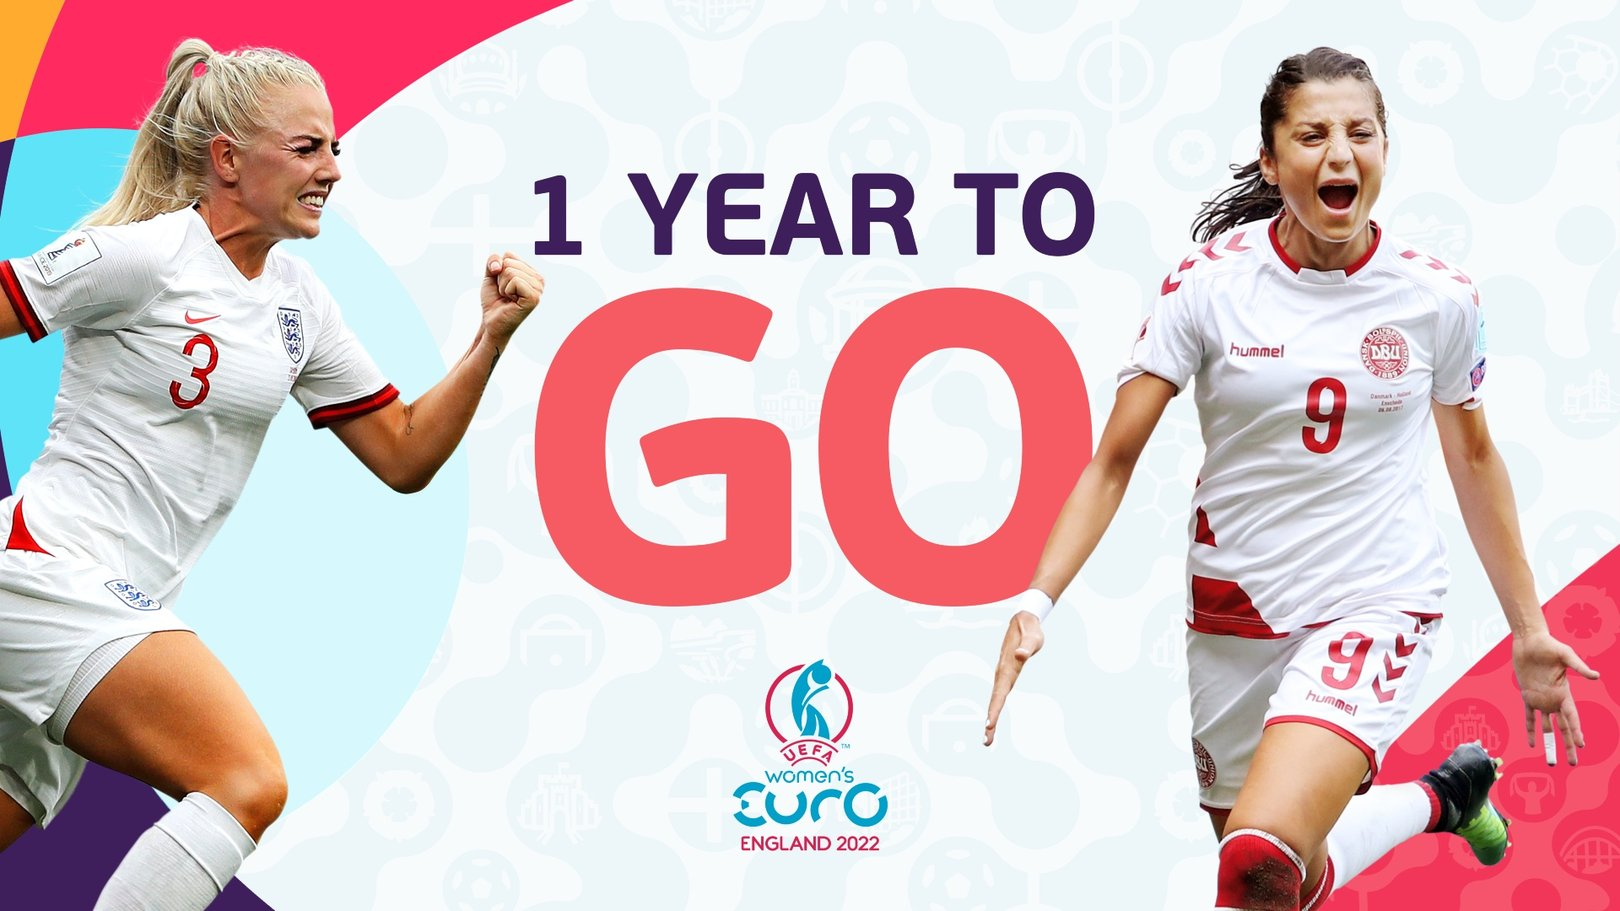 Women's EURO 2022 one year to go: Key dates and ticket information as Academy Stadium plays host